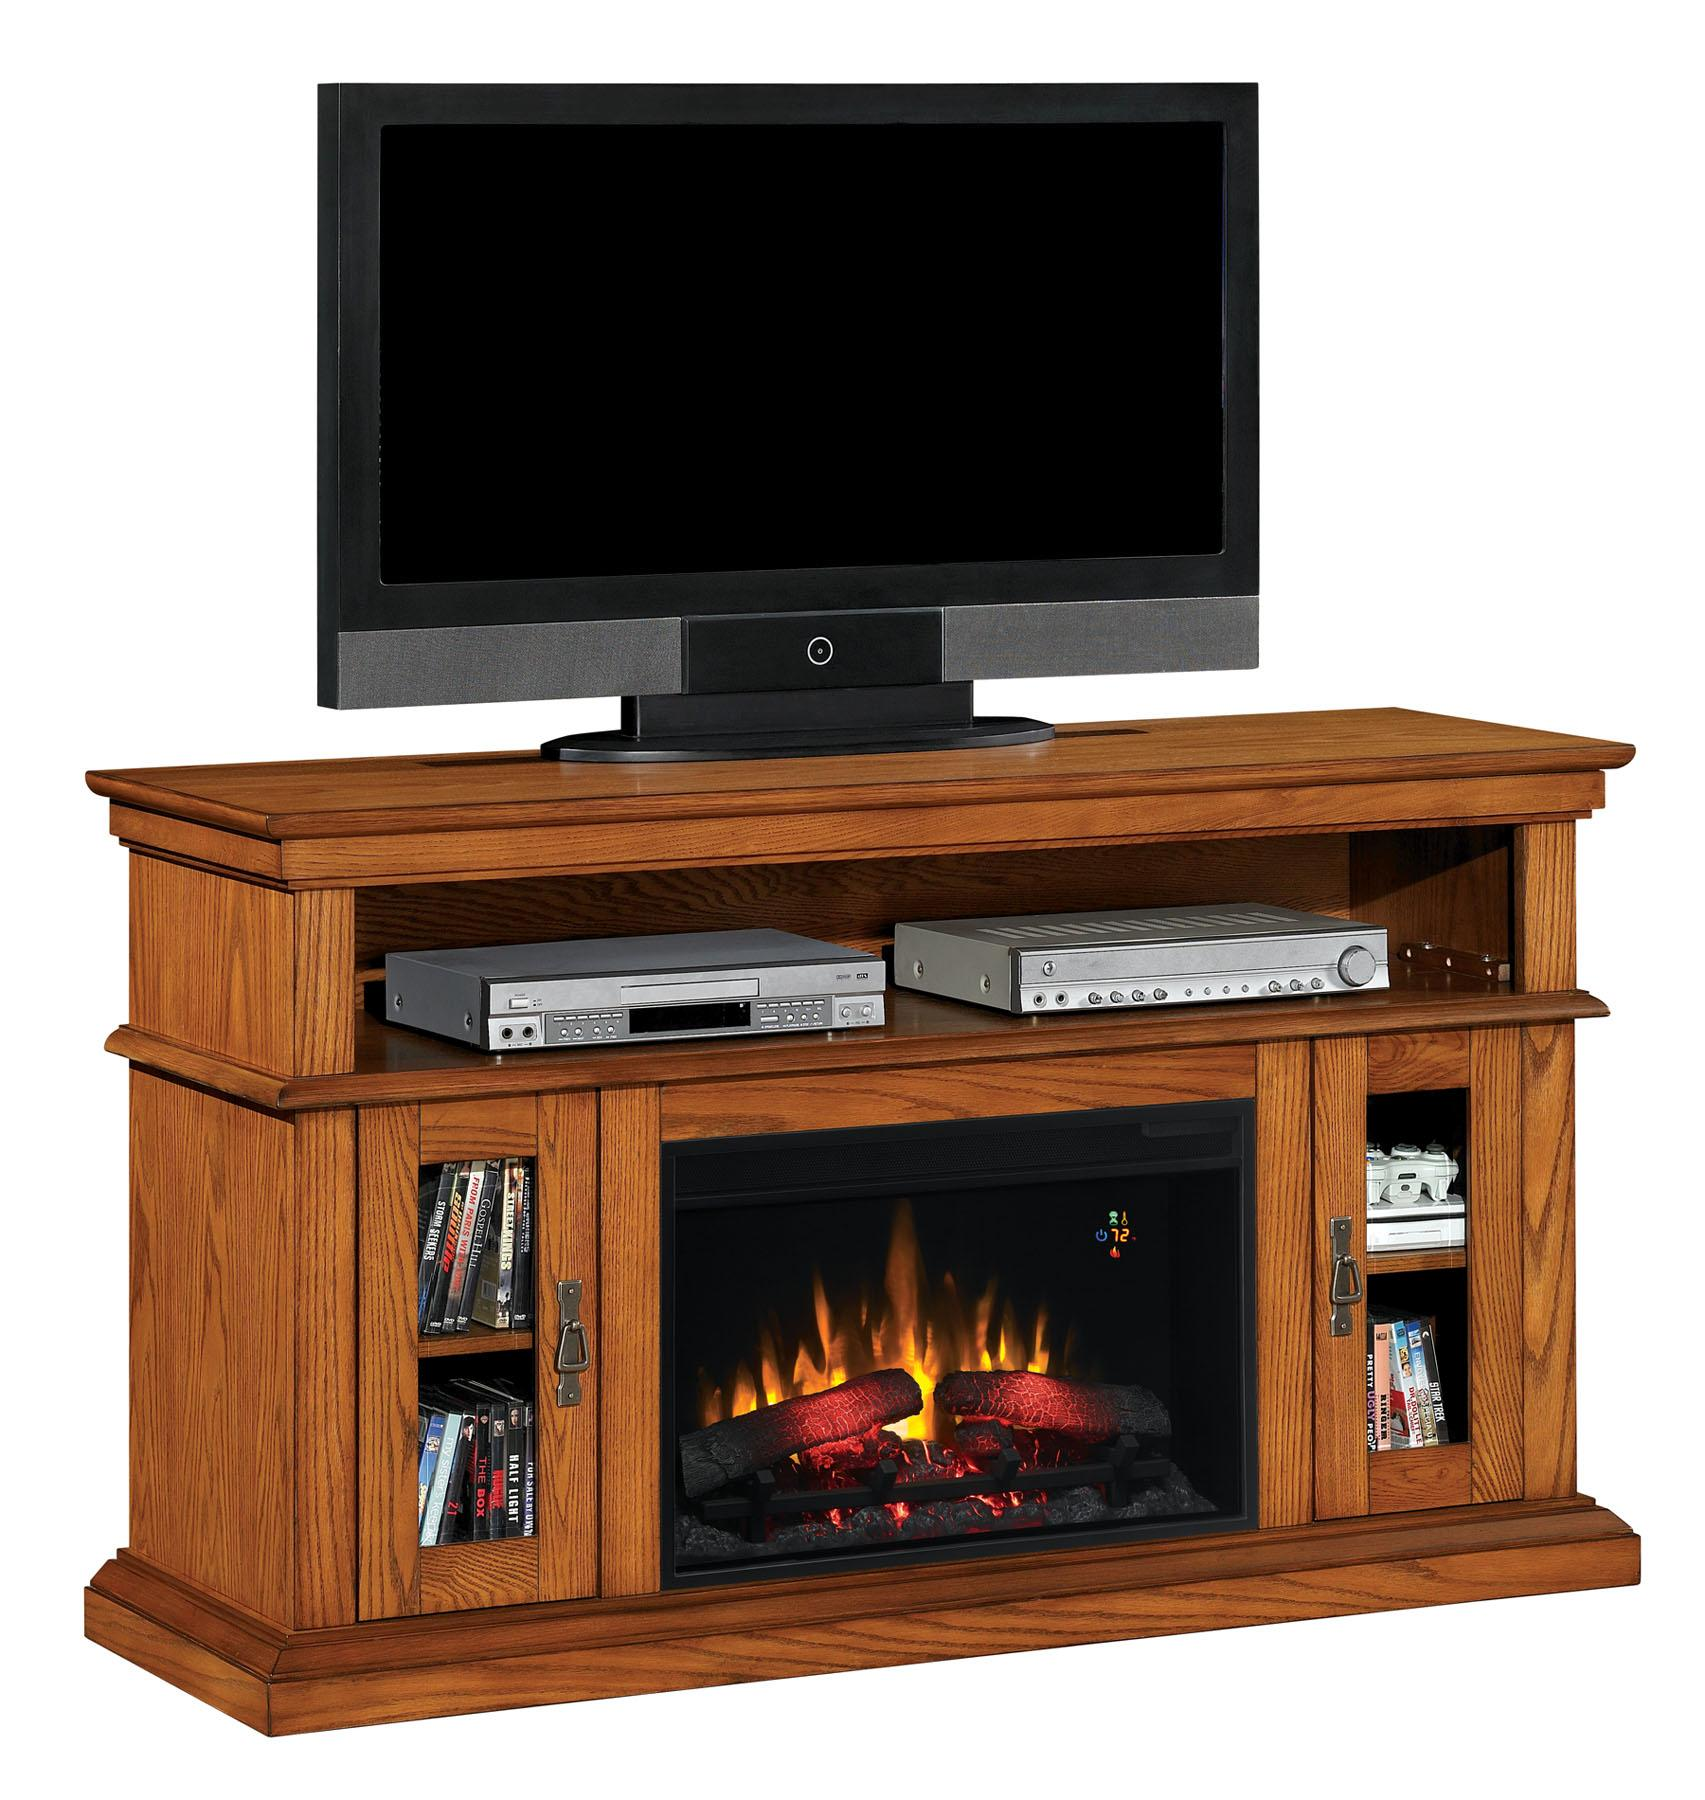 classicflame 26mm2209 o107 brookfield tv stand for tvs up to 65 premium oak. Black Bedroom Furniture Sets. Home Design Ideas